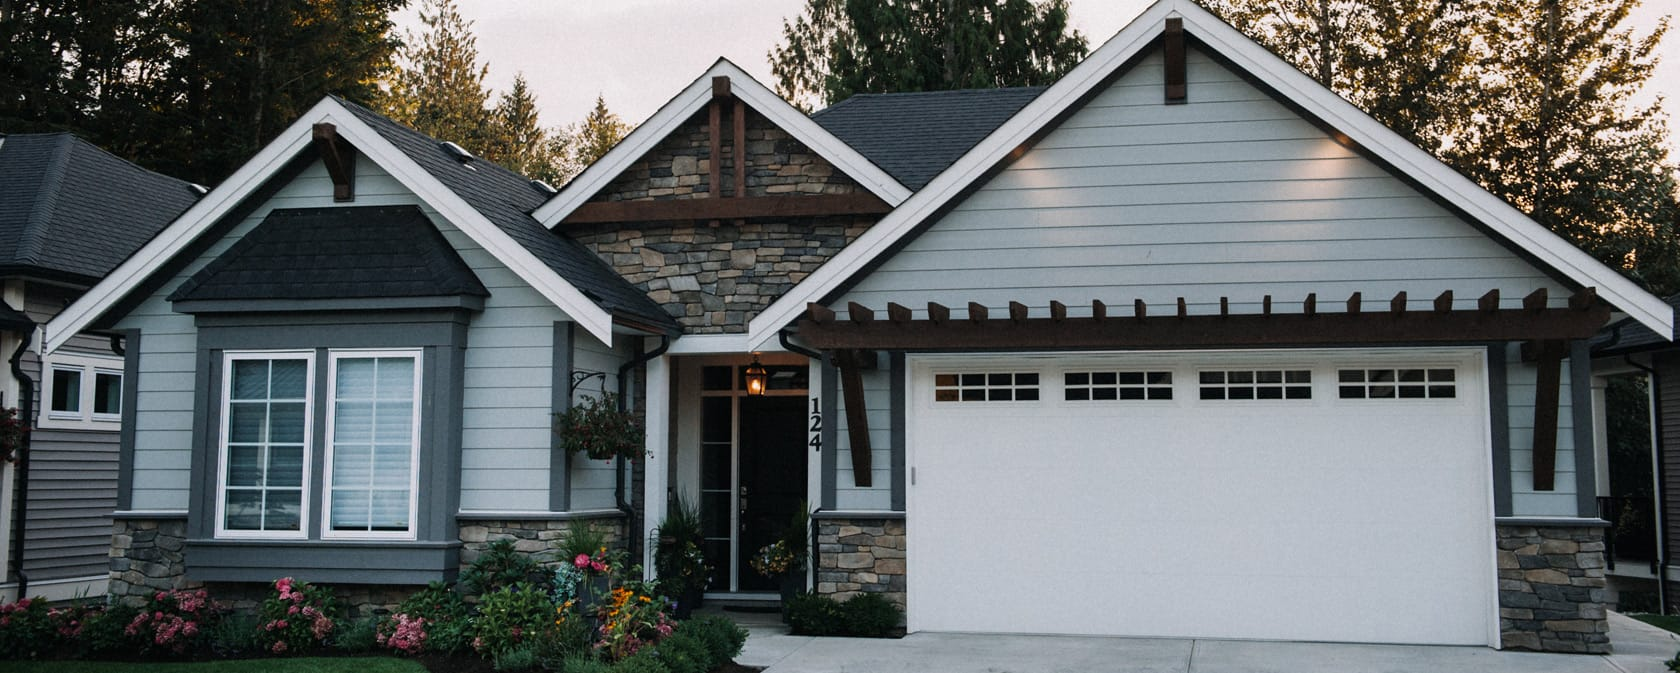 Custom Home Builder in Abbotsford